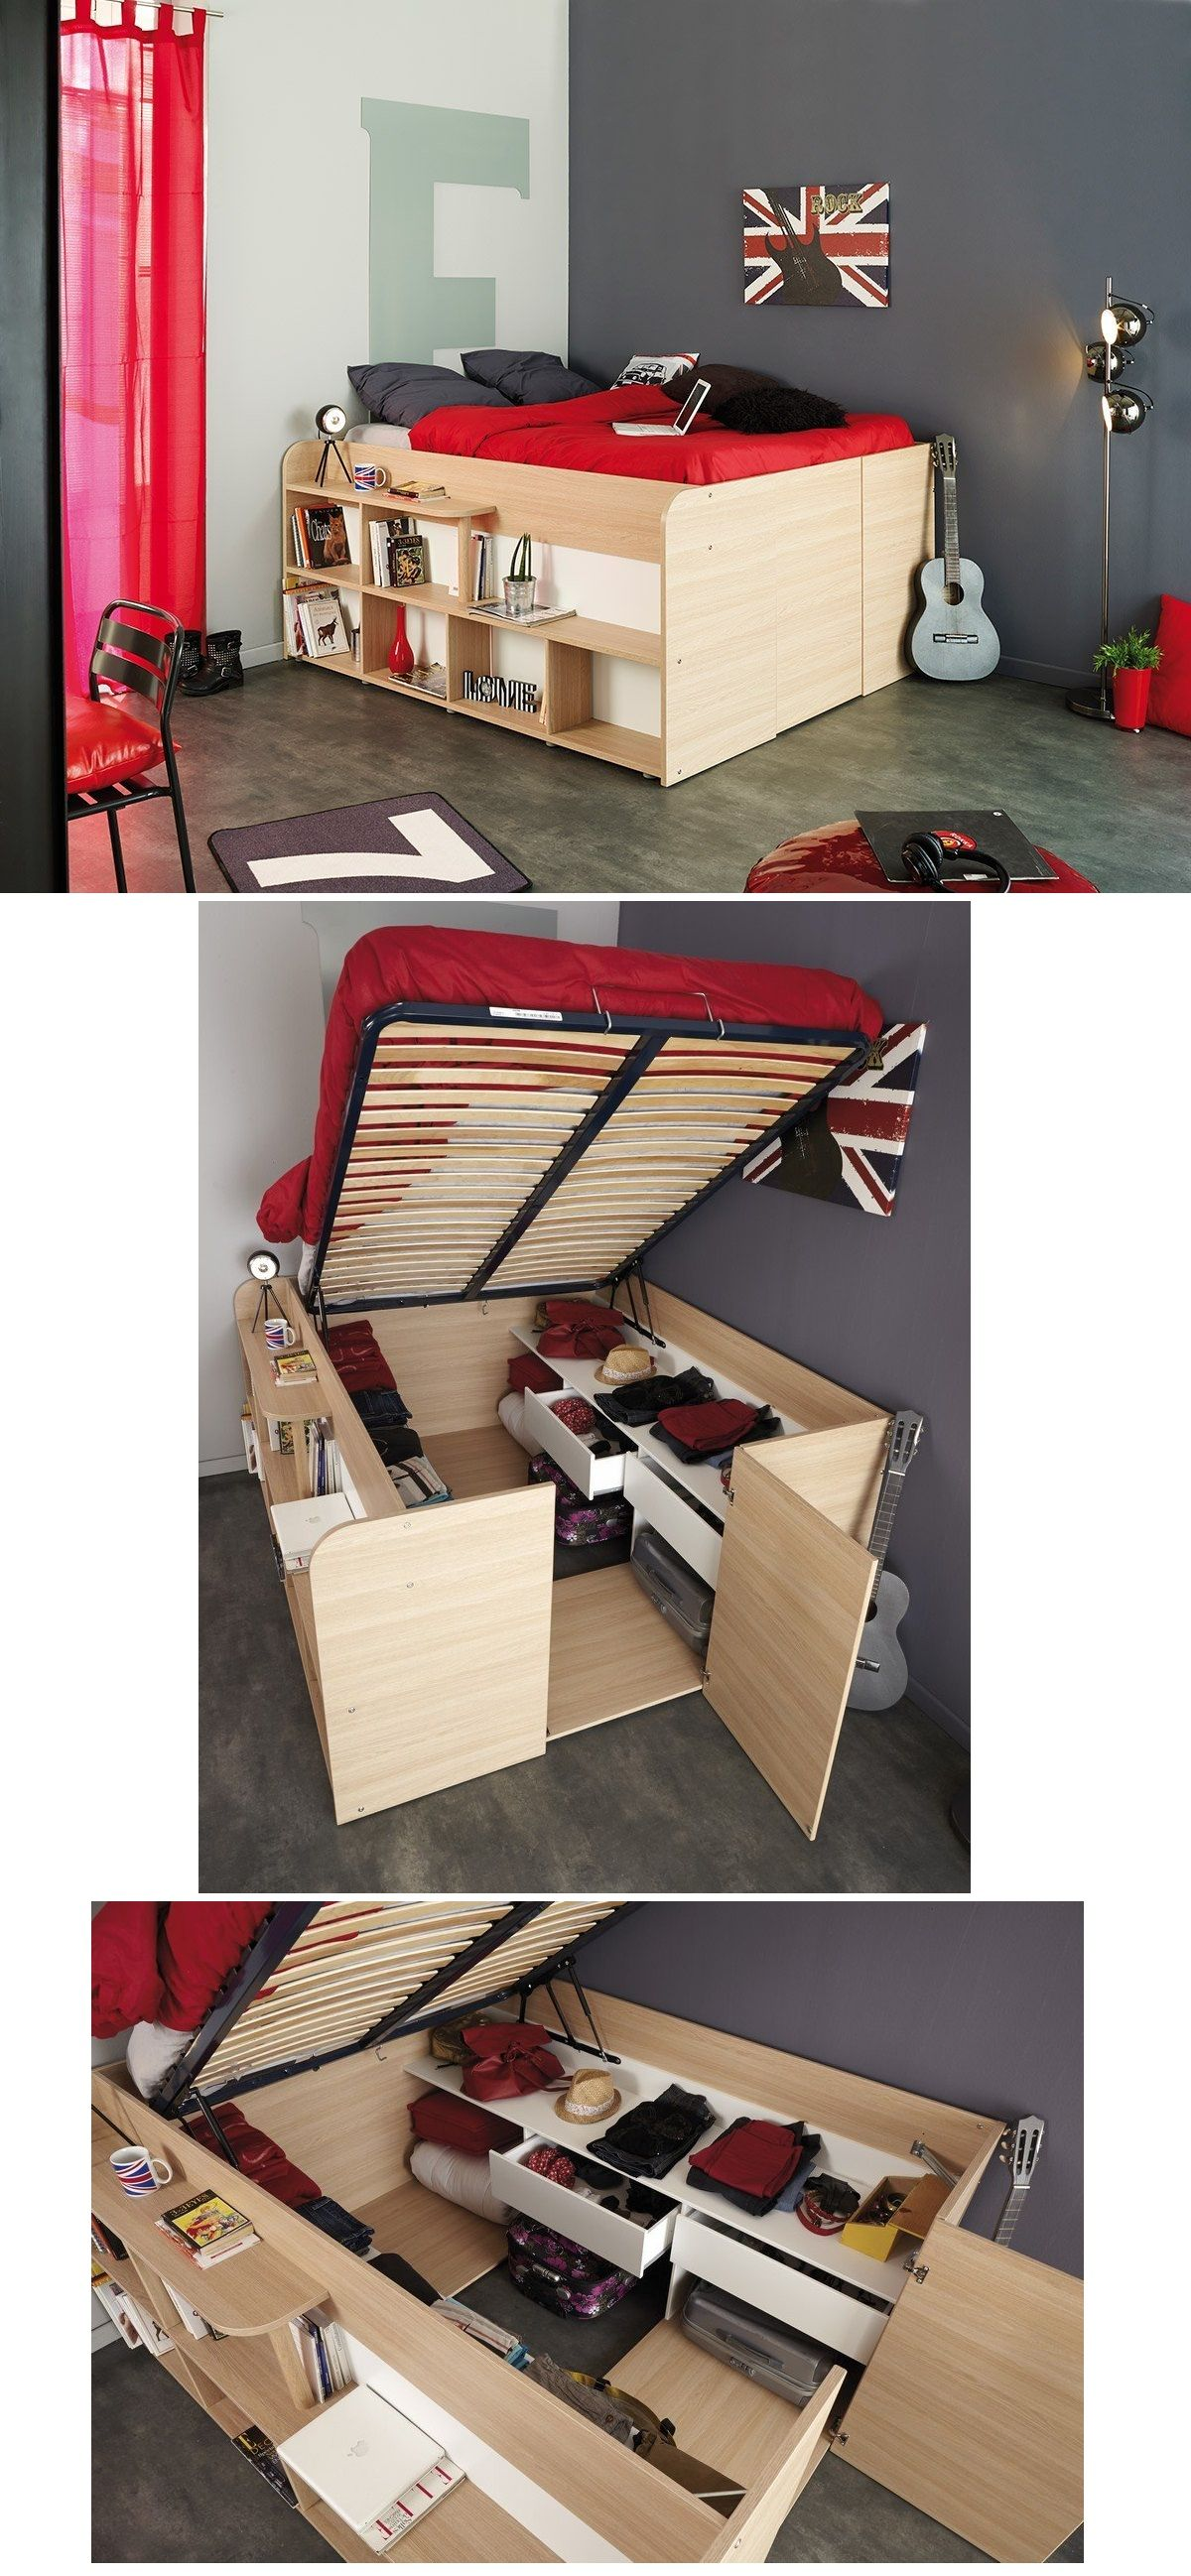 Space Up Bed And Storage Space Up Clean Bedroom Storage Spaces